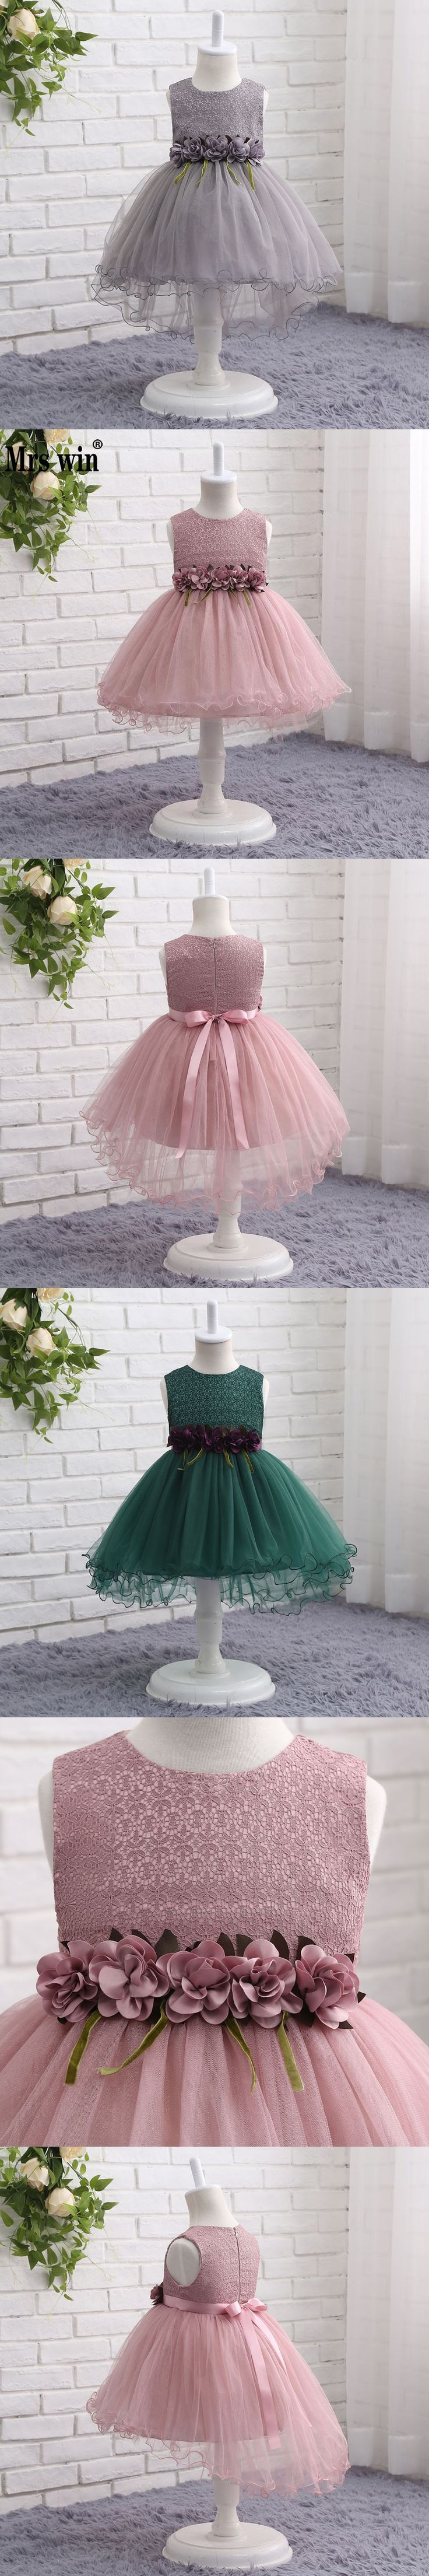 Ball Gown Flower Girls Dresses For Wedding Kids First Holy Communion Belt Ruffle Little Baby Pageant Dress 2017 Pink Dark GreenC